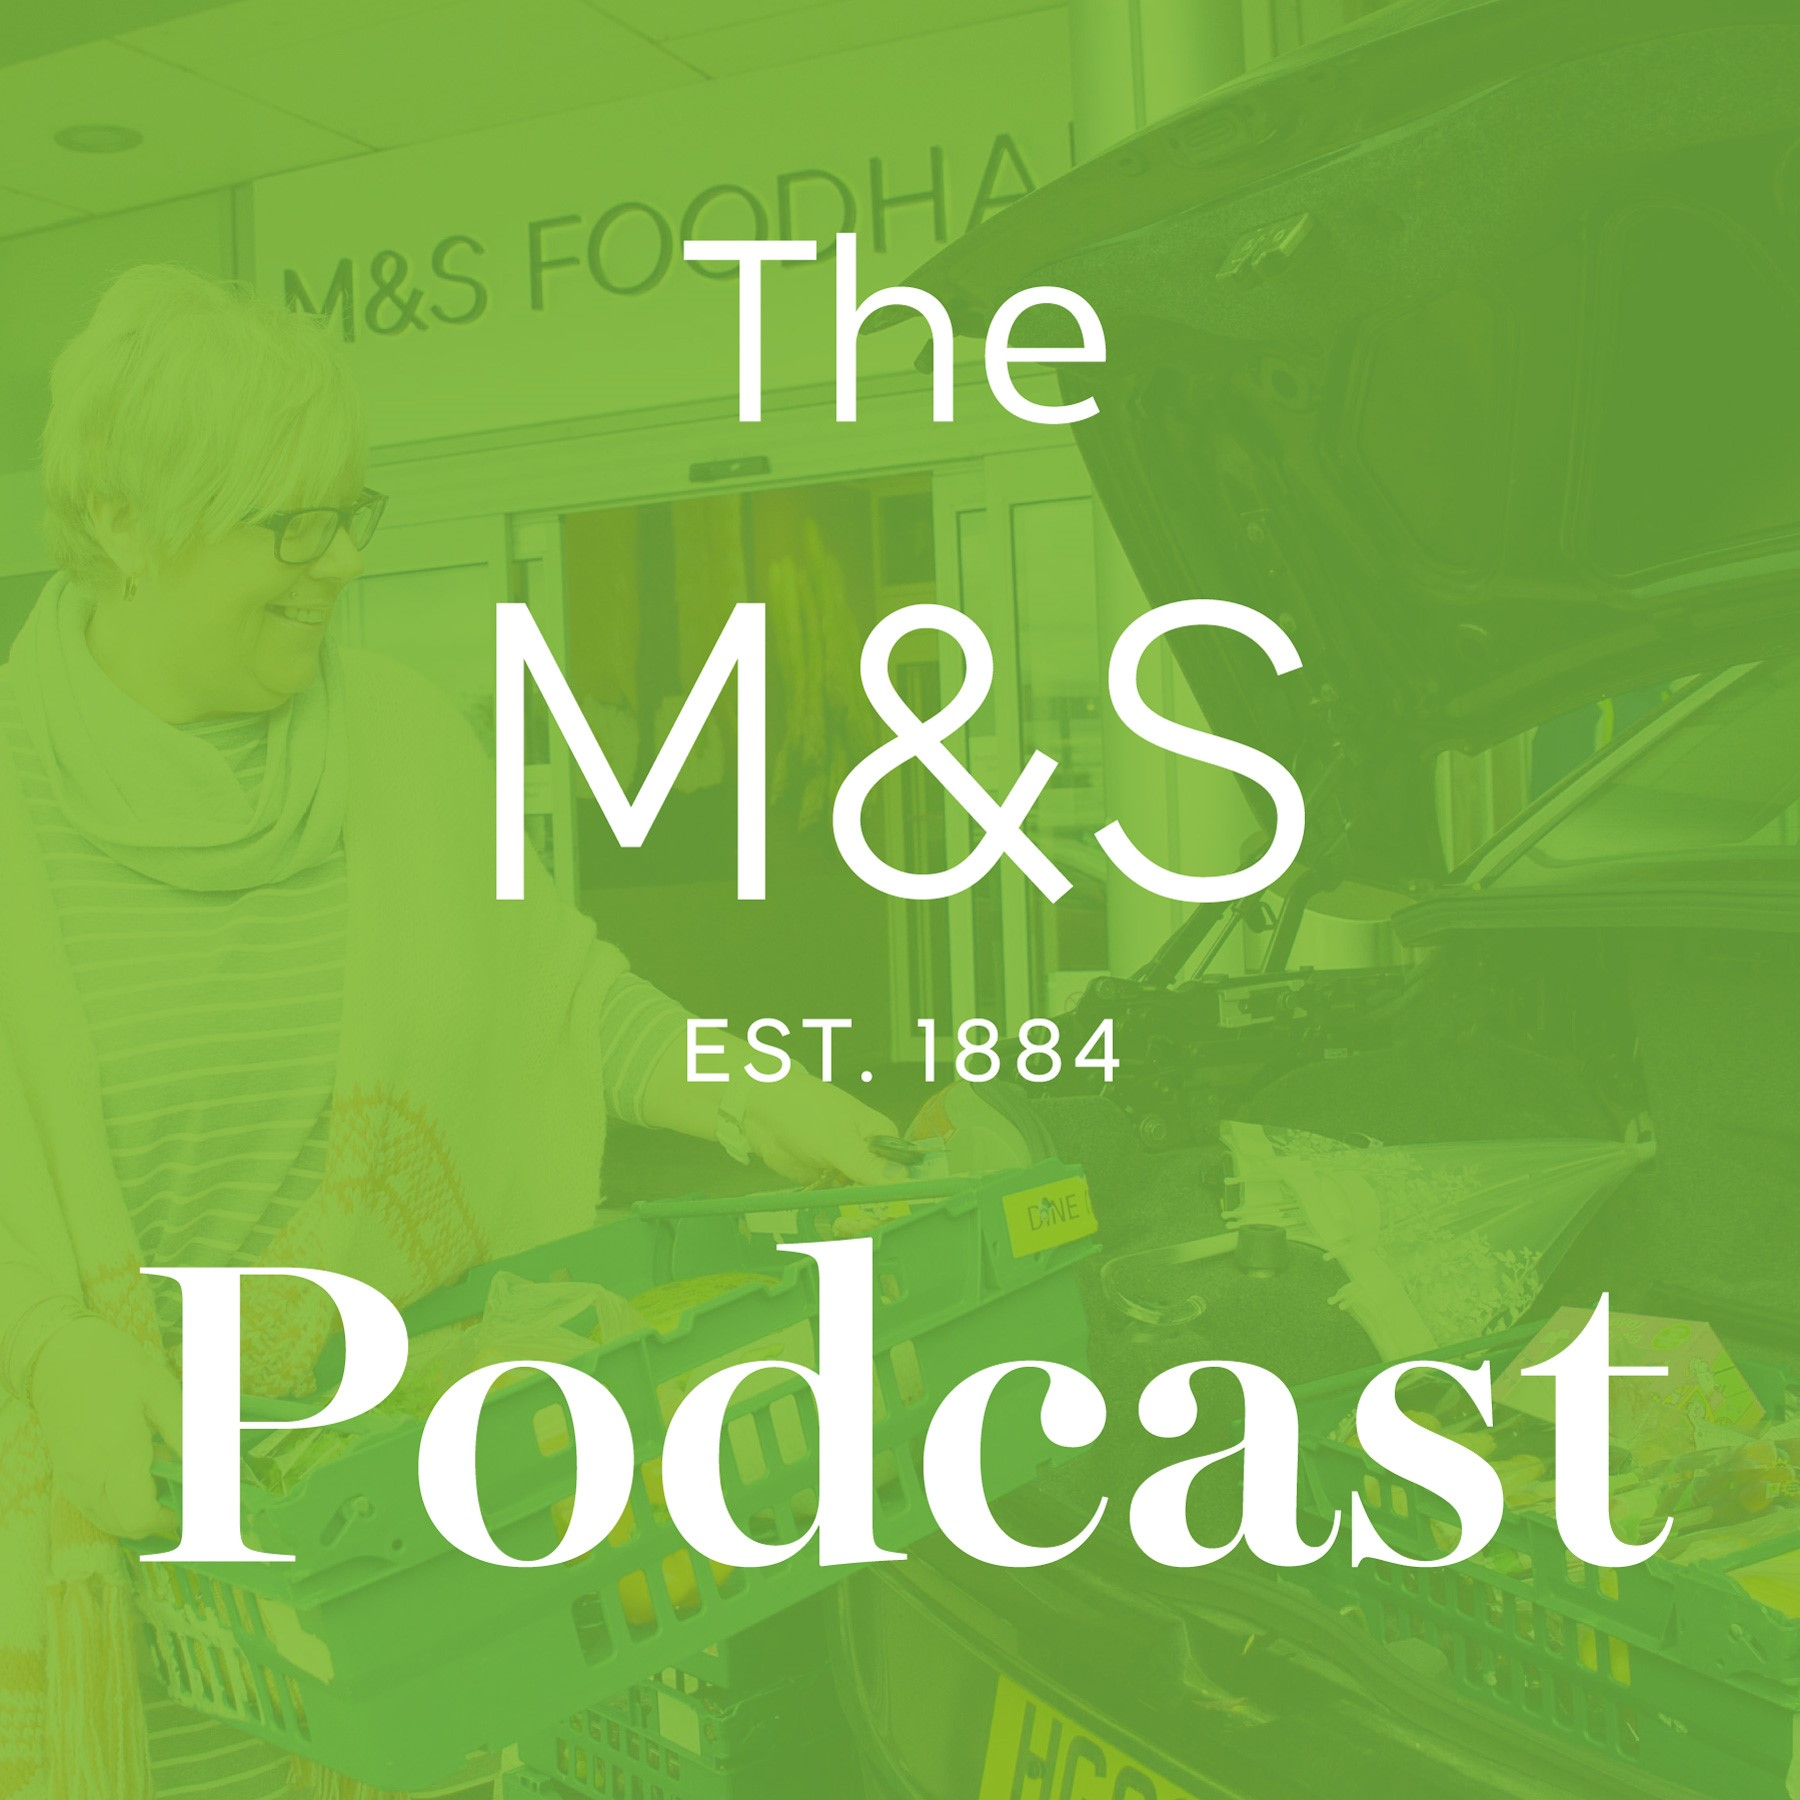 The Marks and Spencer Podcast